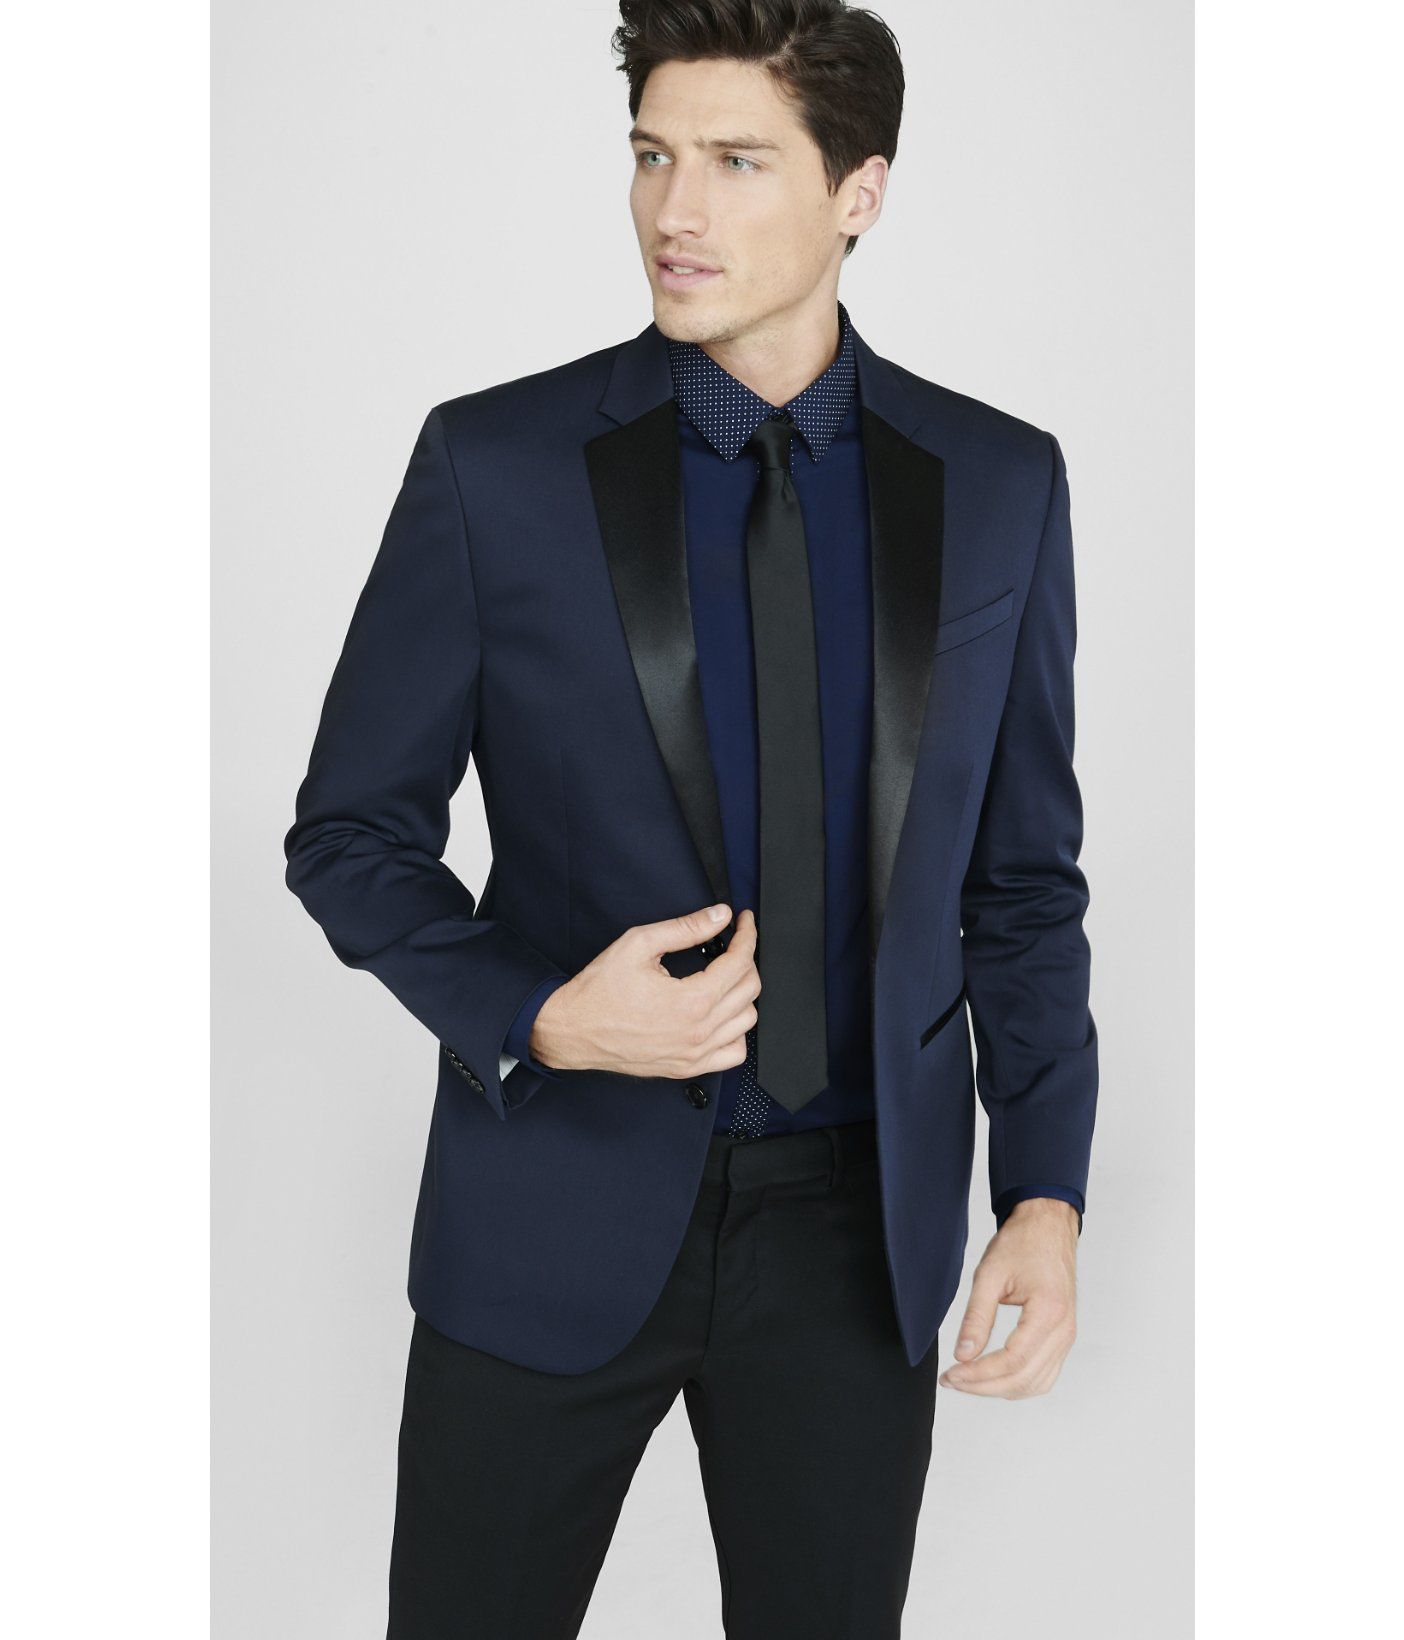 navy blue and black tuxedo - Google Search | Matthew | Pinterest ...